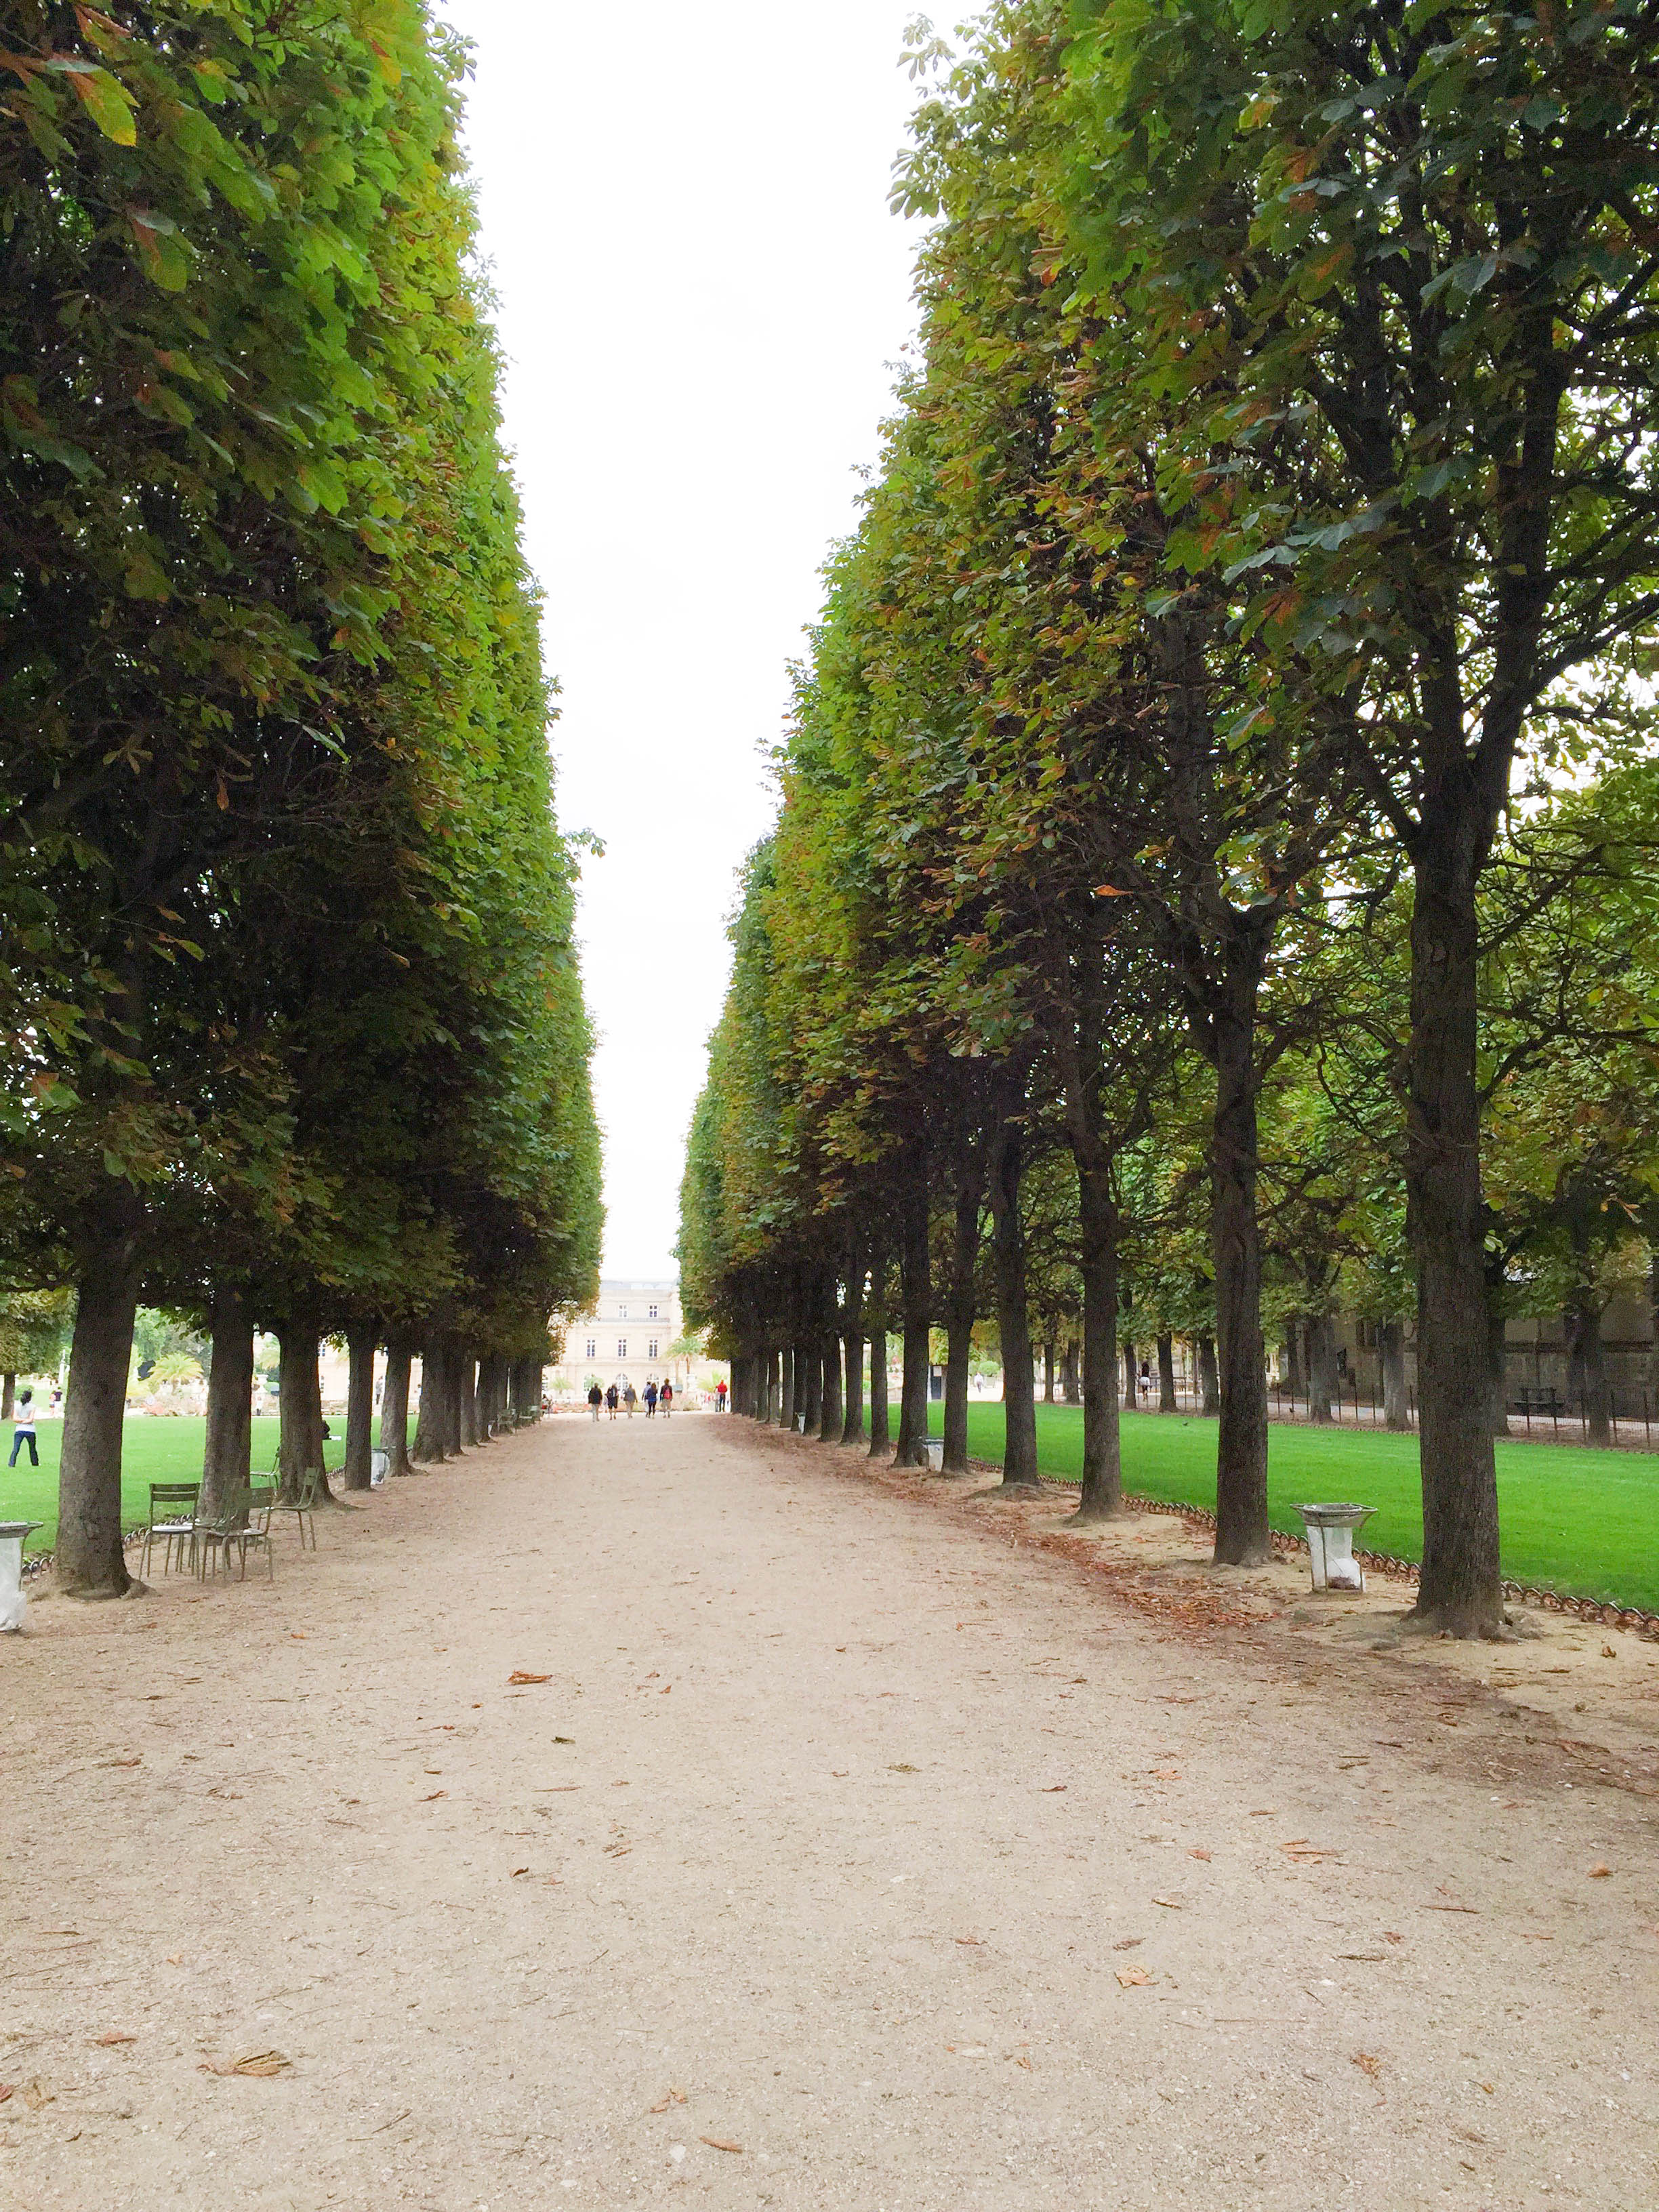 There were rows and rows of trees like this in the Luxembourg Gardens.